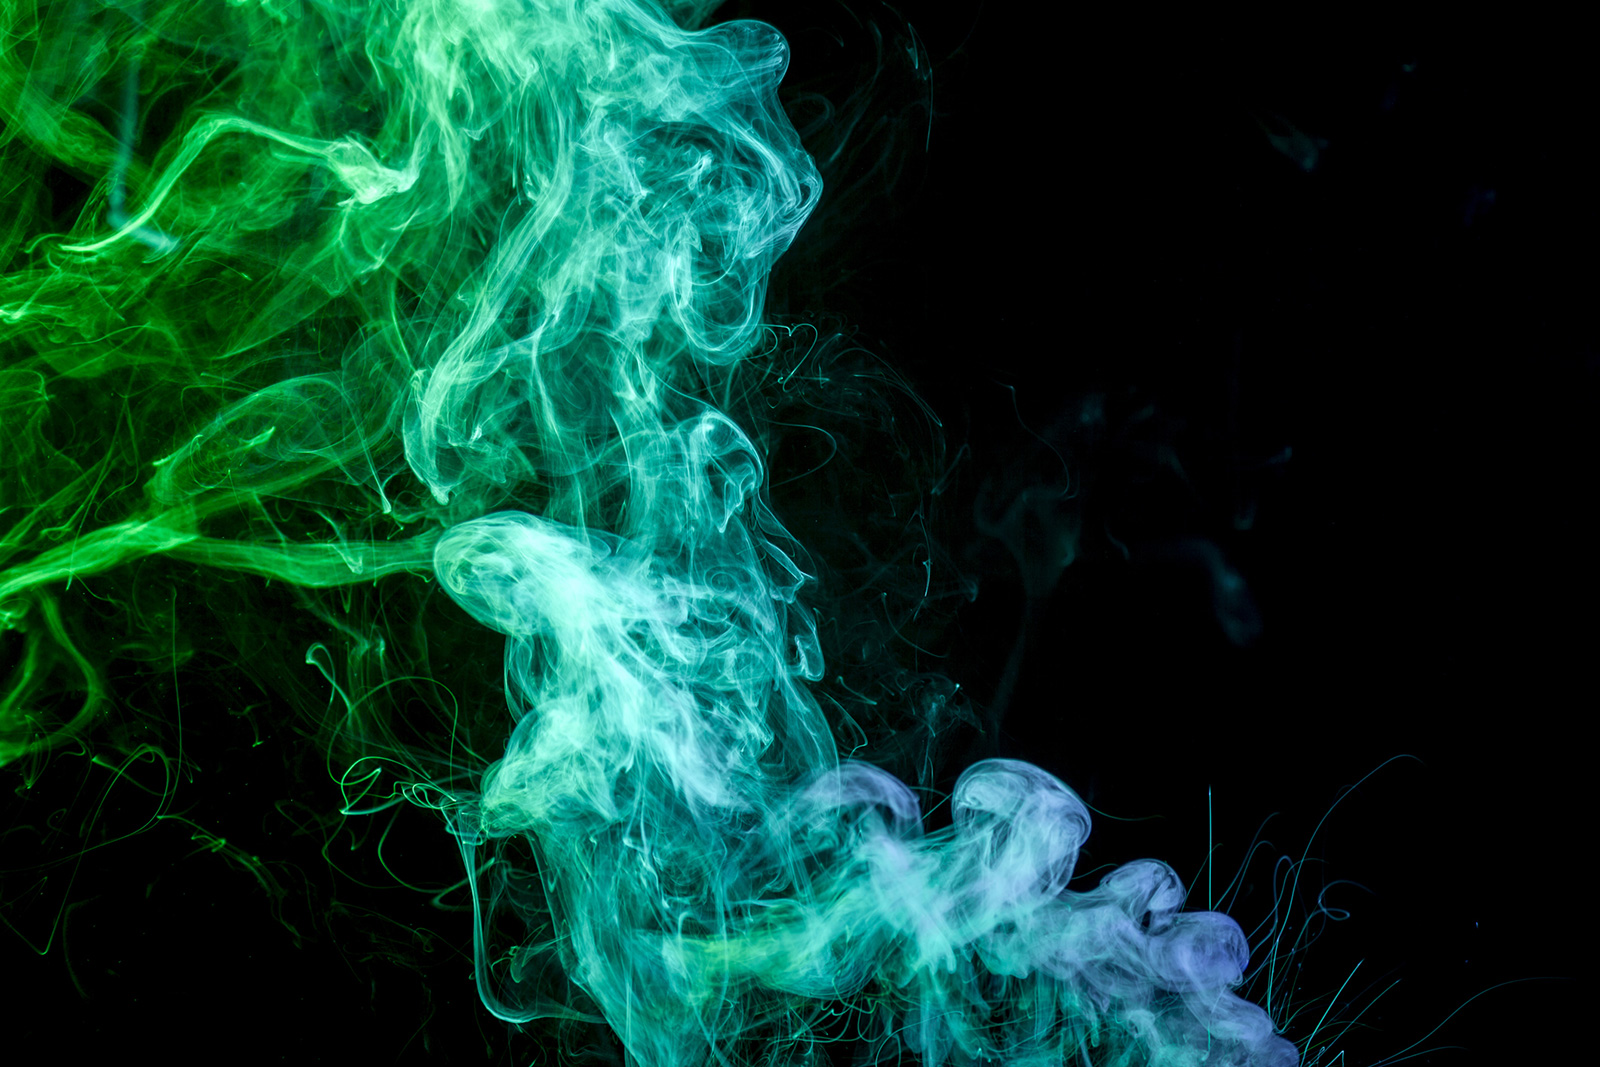 Cloud of smoke against a black background